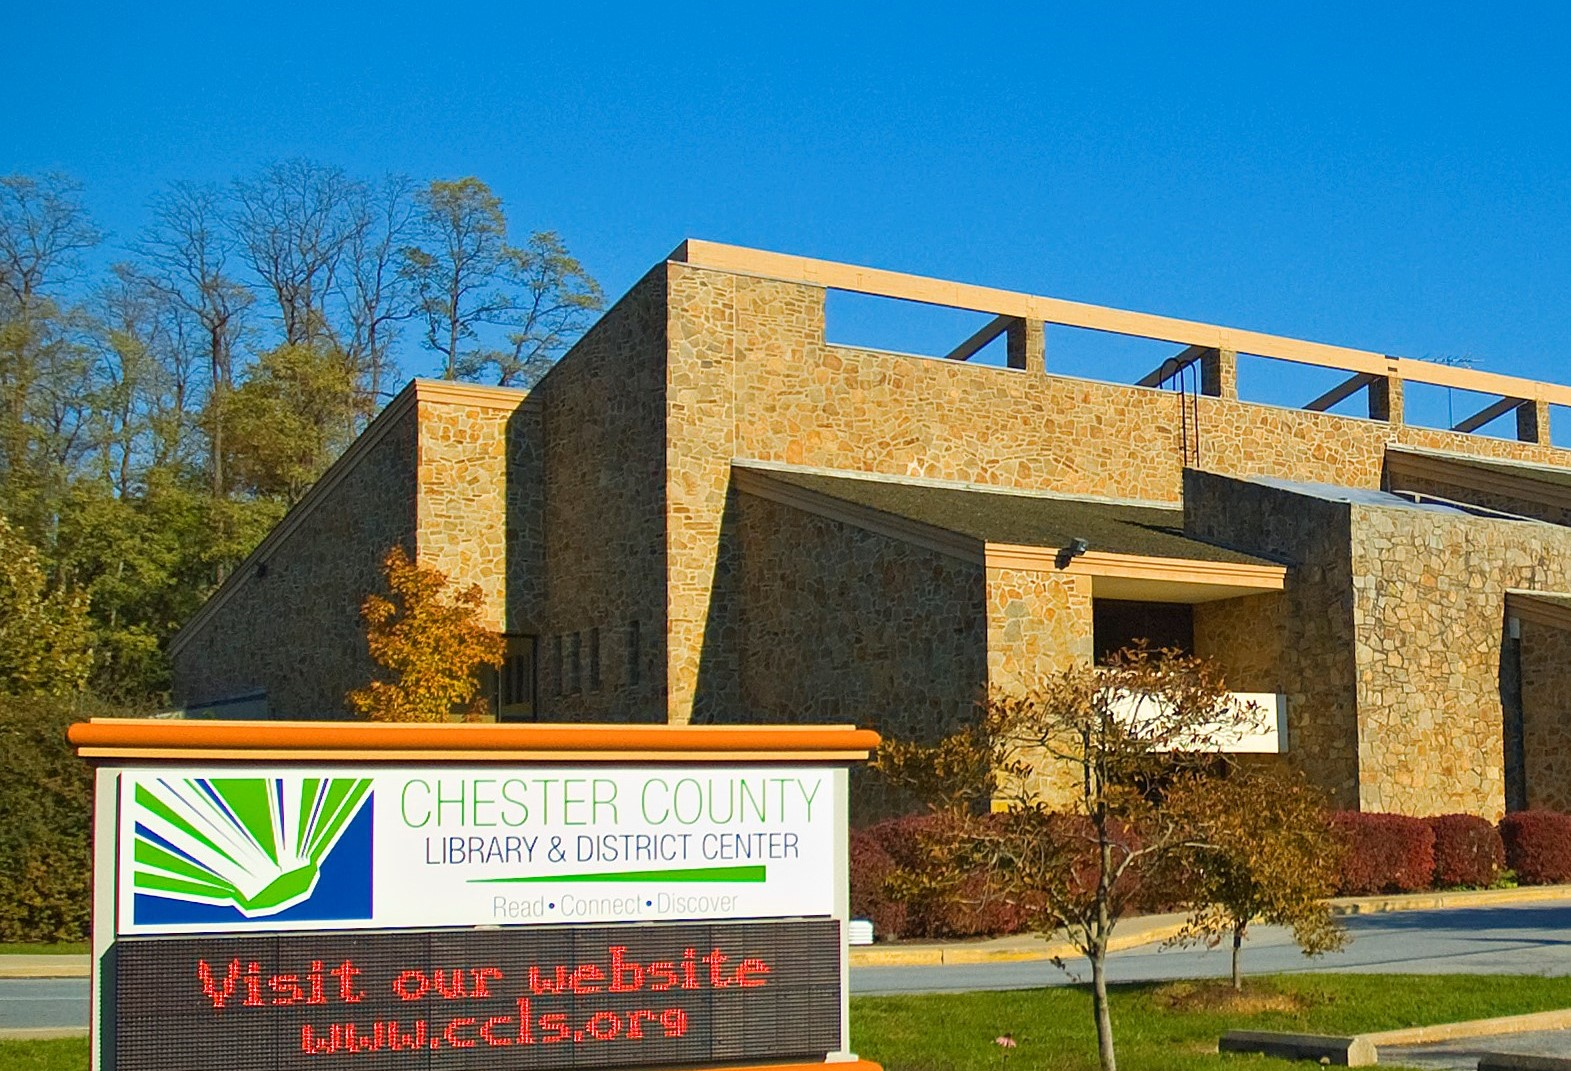 Chester County Library Rated One of America's Top Libraries